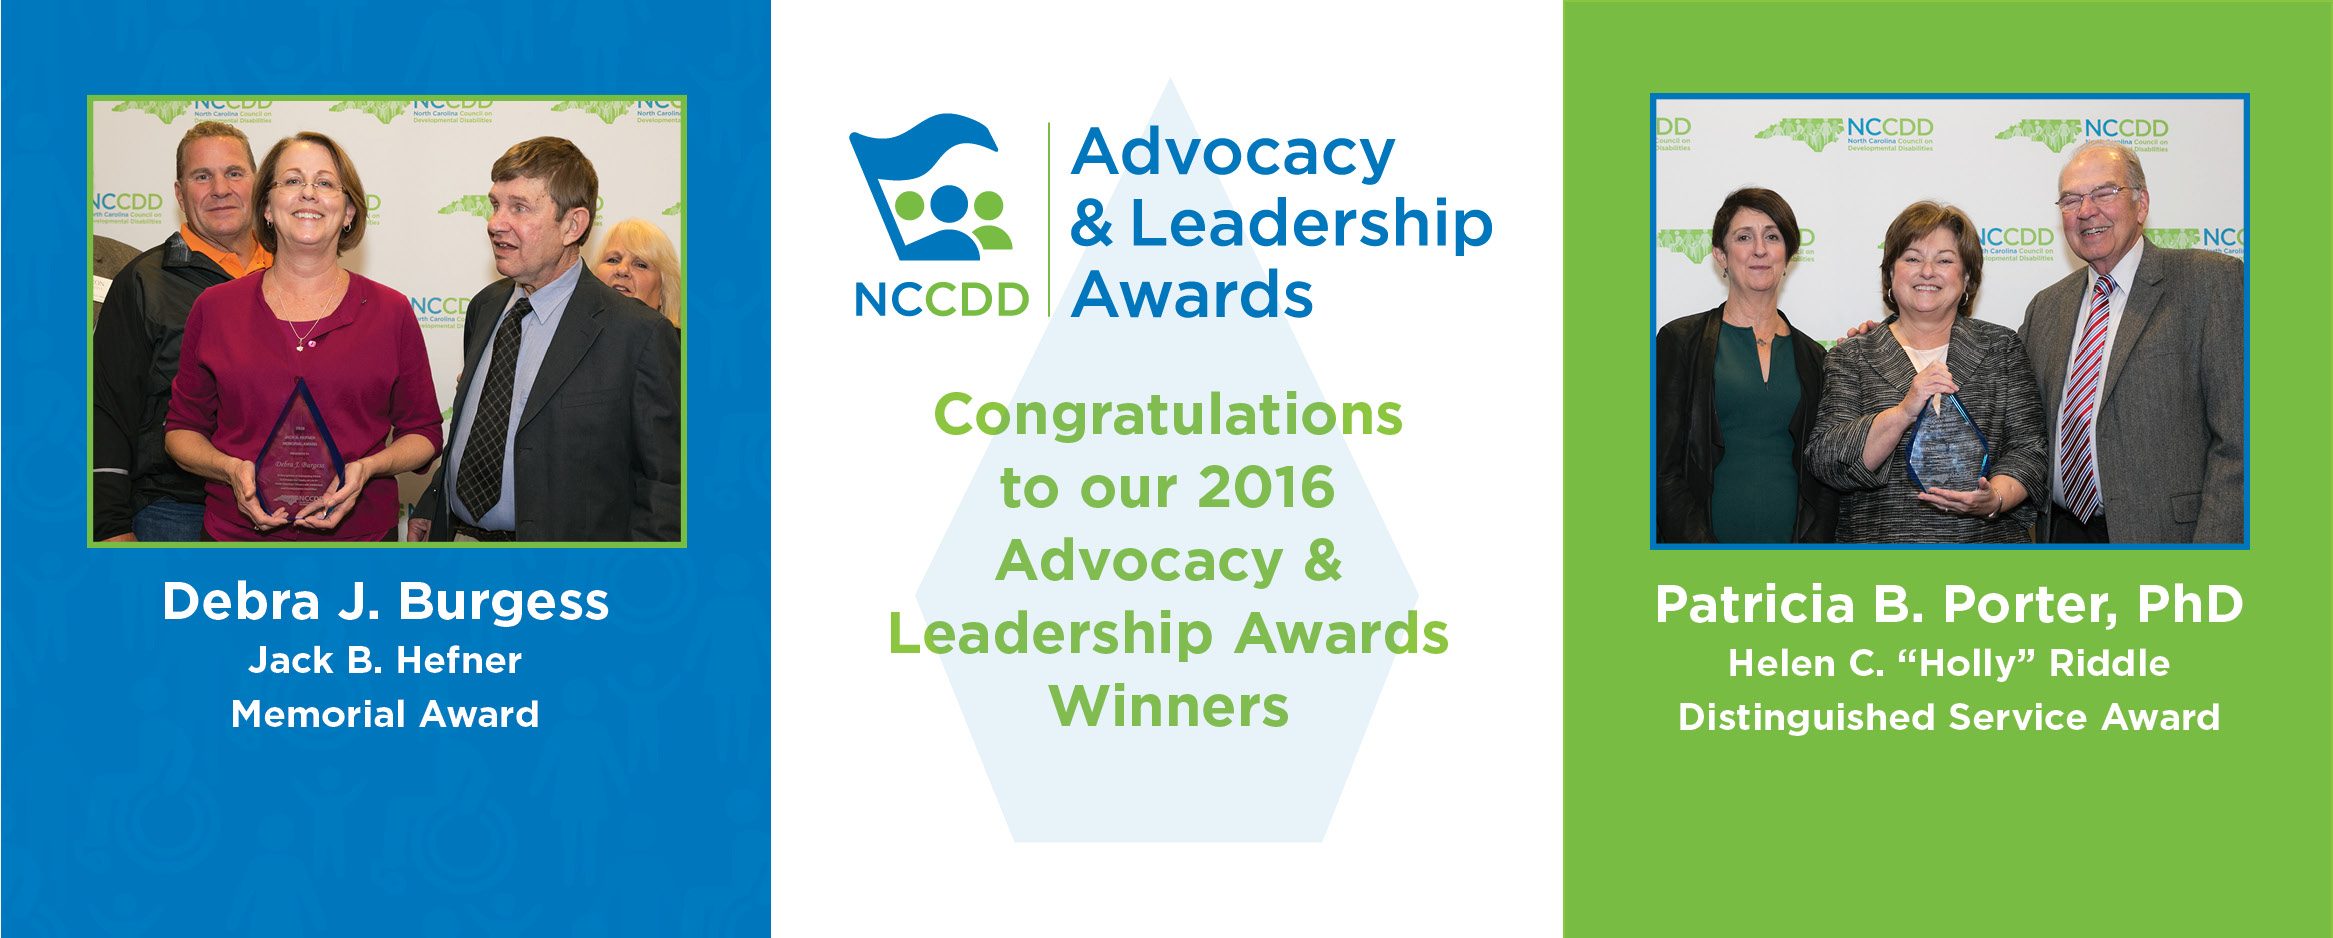 Congratulations to our 2016 Advocacy & Leadership Award Winners